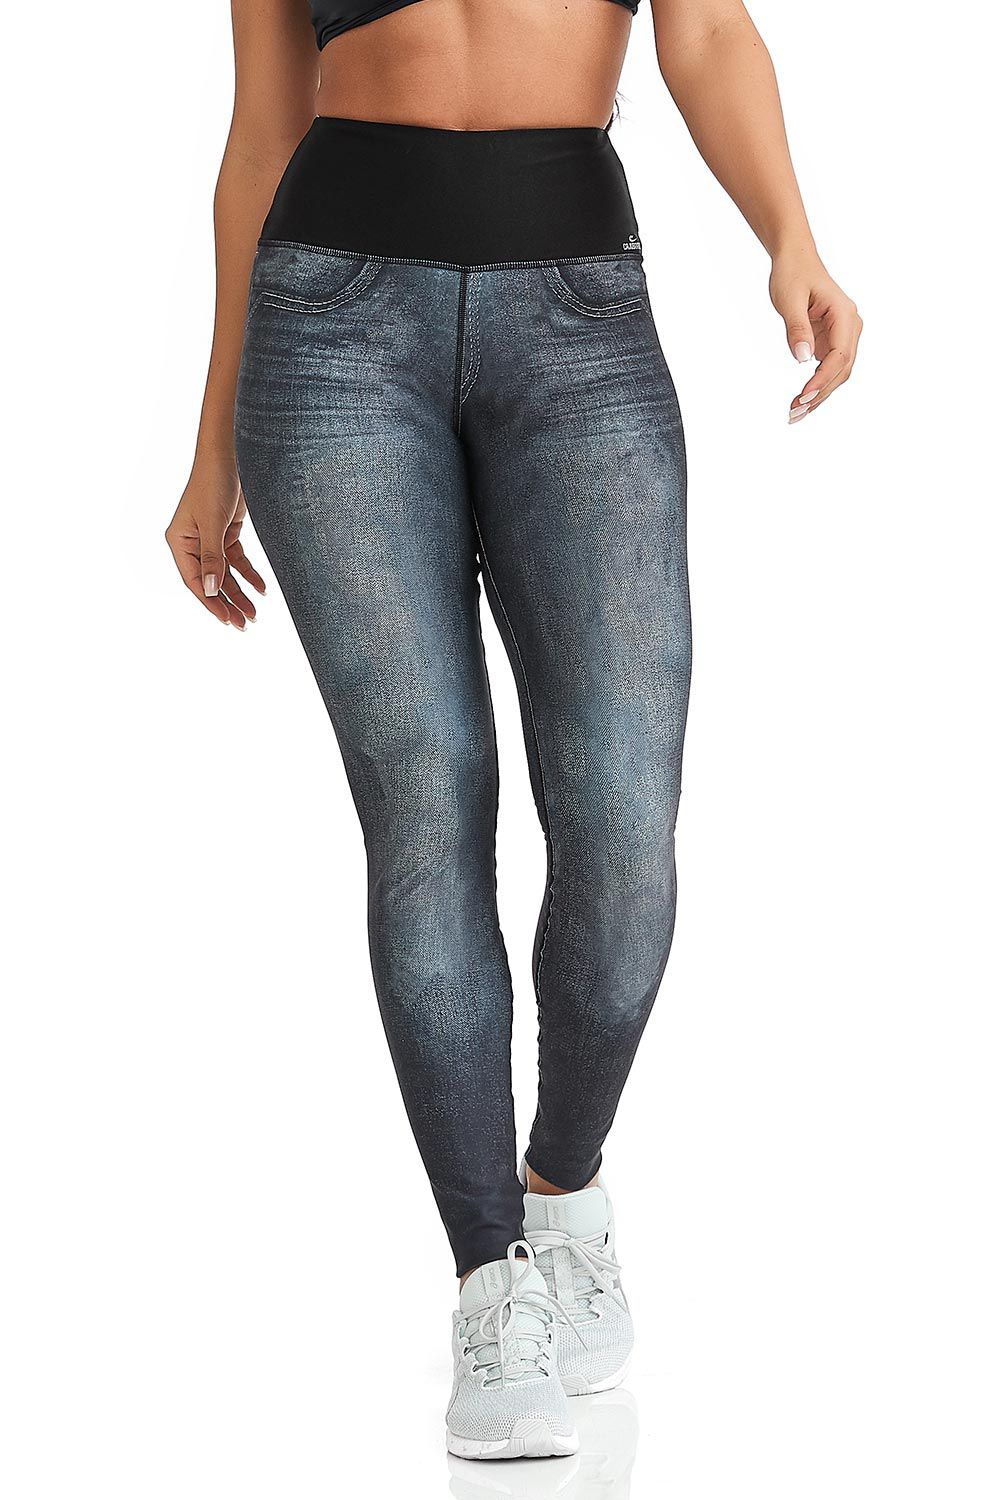 LEGGING DOUBLE FACE MOTION JEANS CAJUBRASIL